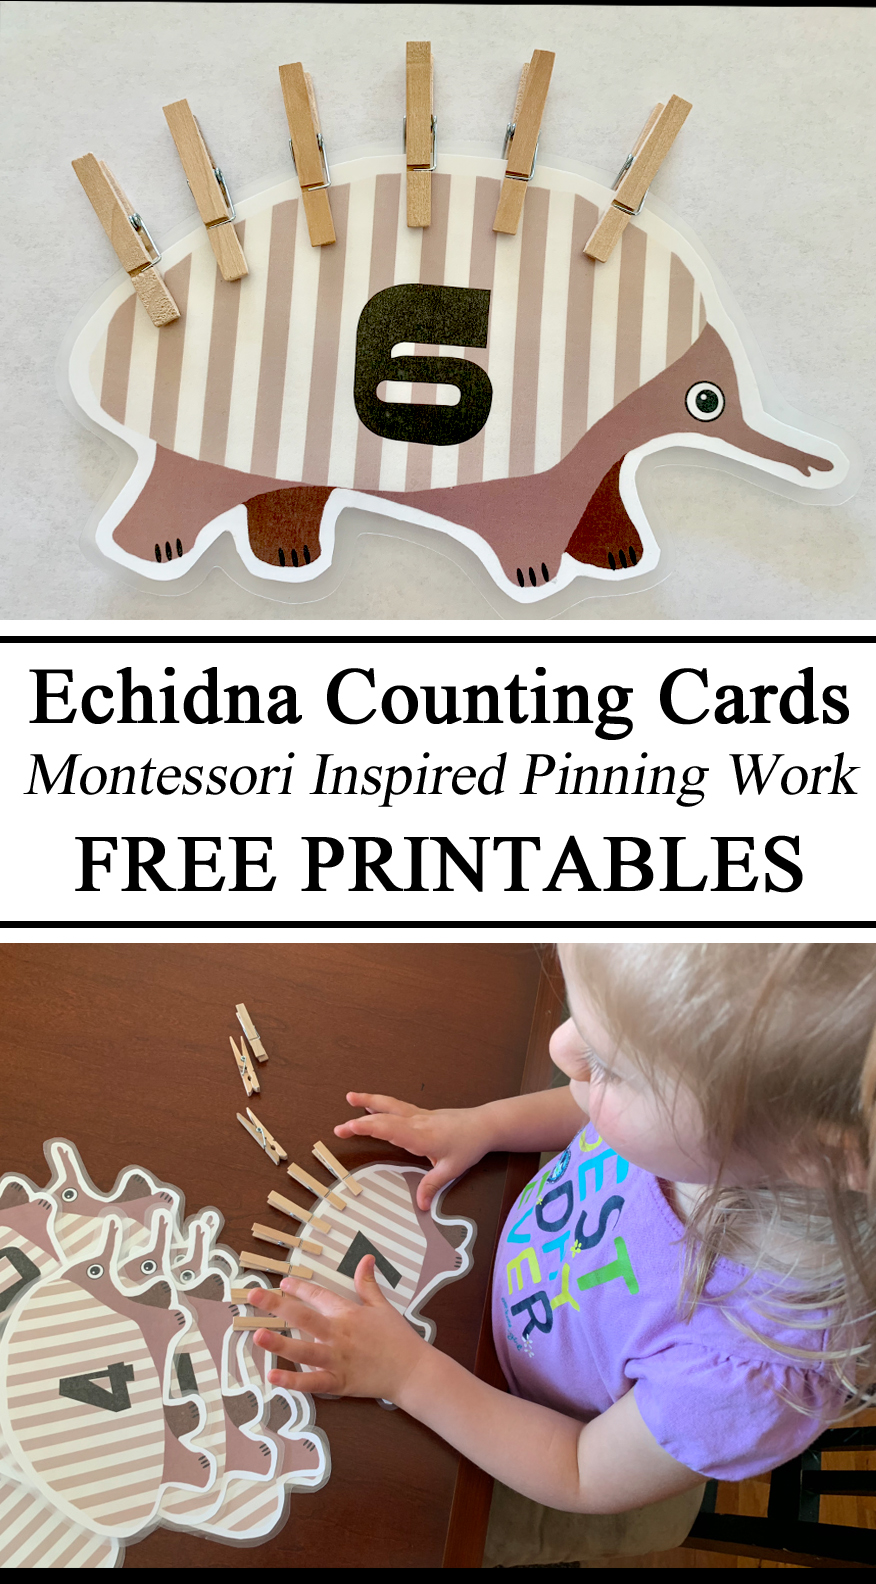 FREE Download Printable Printables, Echidna Counting Cards Clothespins Pinning Work Montessori Inspired Nature Animal Crafts Preschool Preschoolers Totschool Early Childhood Education Resources for Teachers Fine Motor Skills VIsual